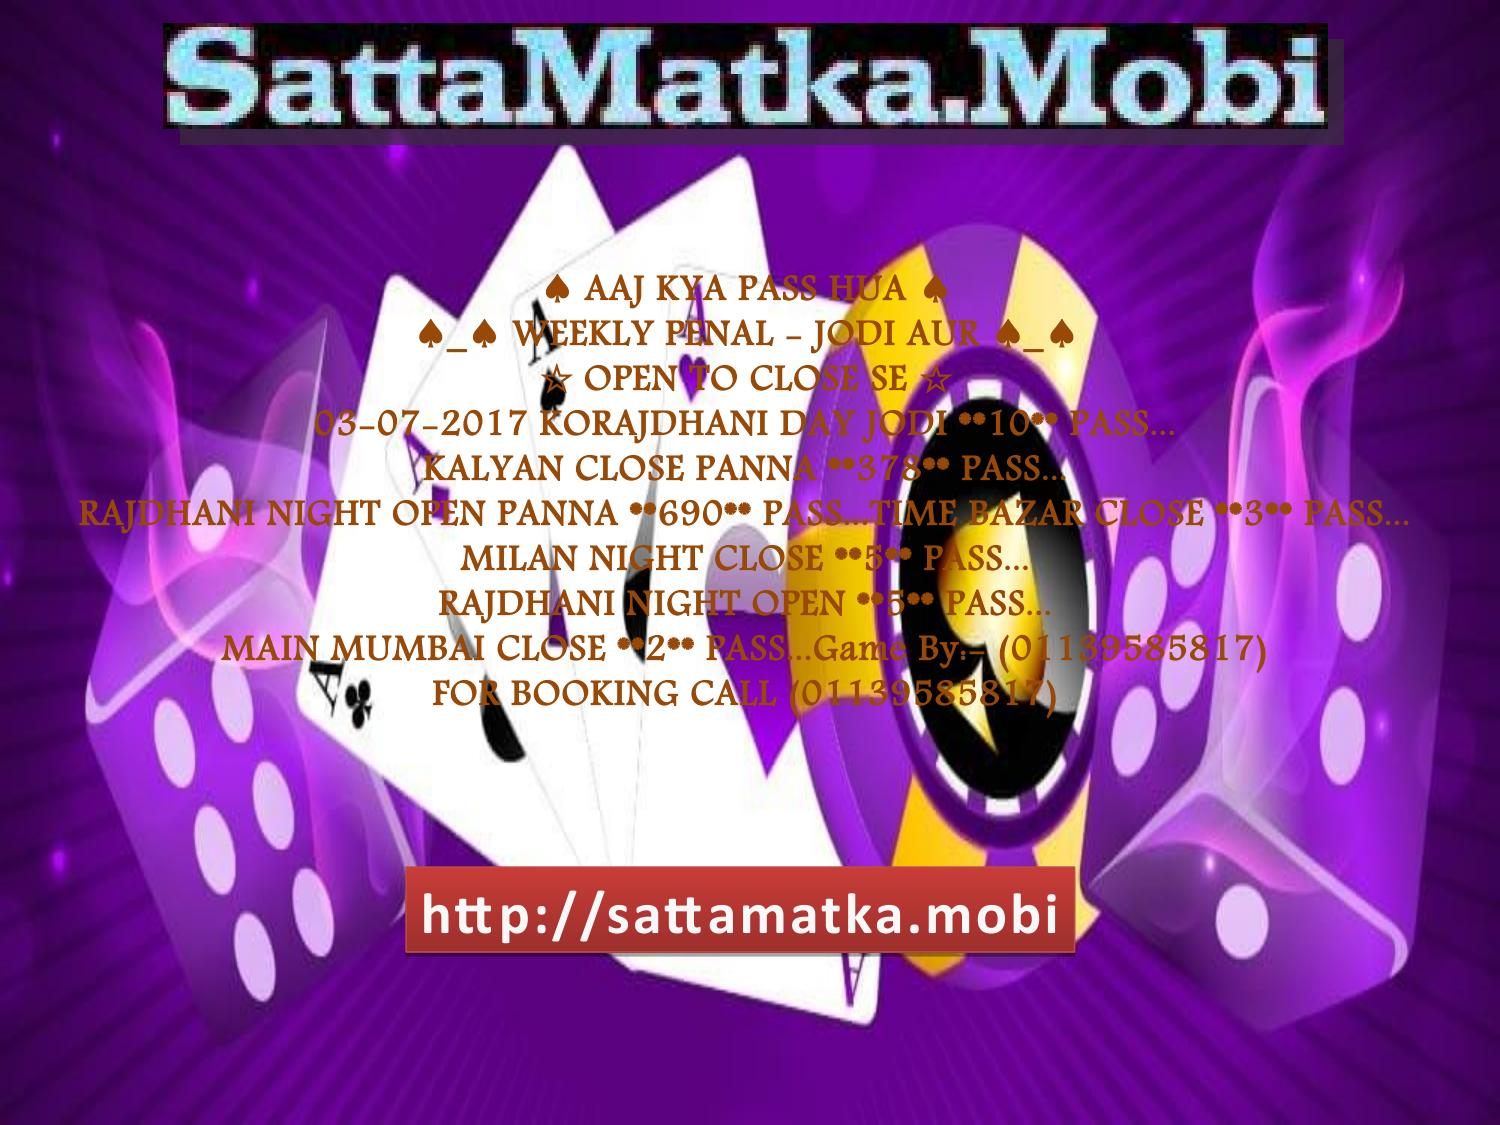 World S Best Satta Matka Guessing Site By Kunalkhanna Issuu